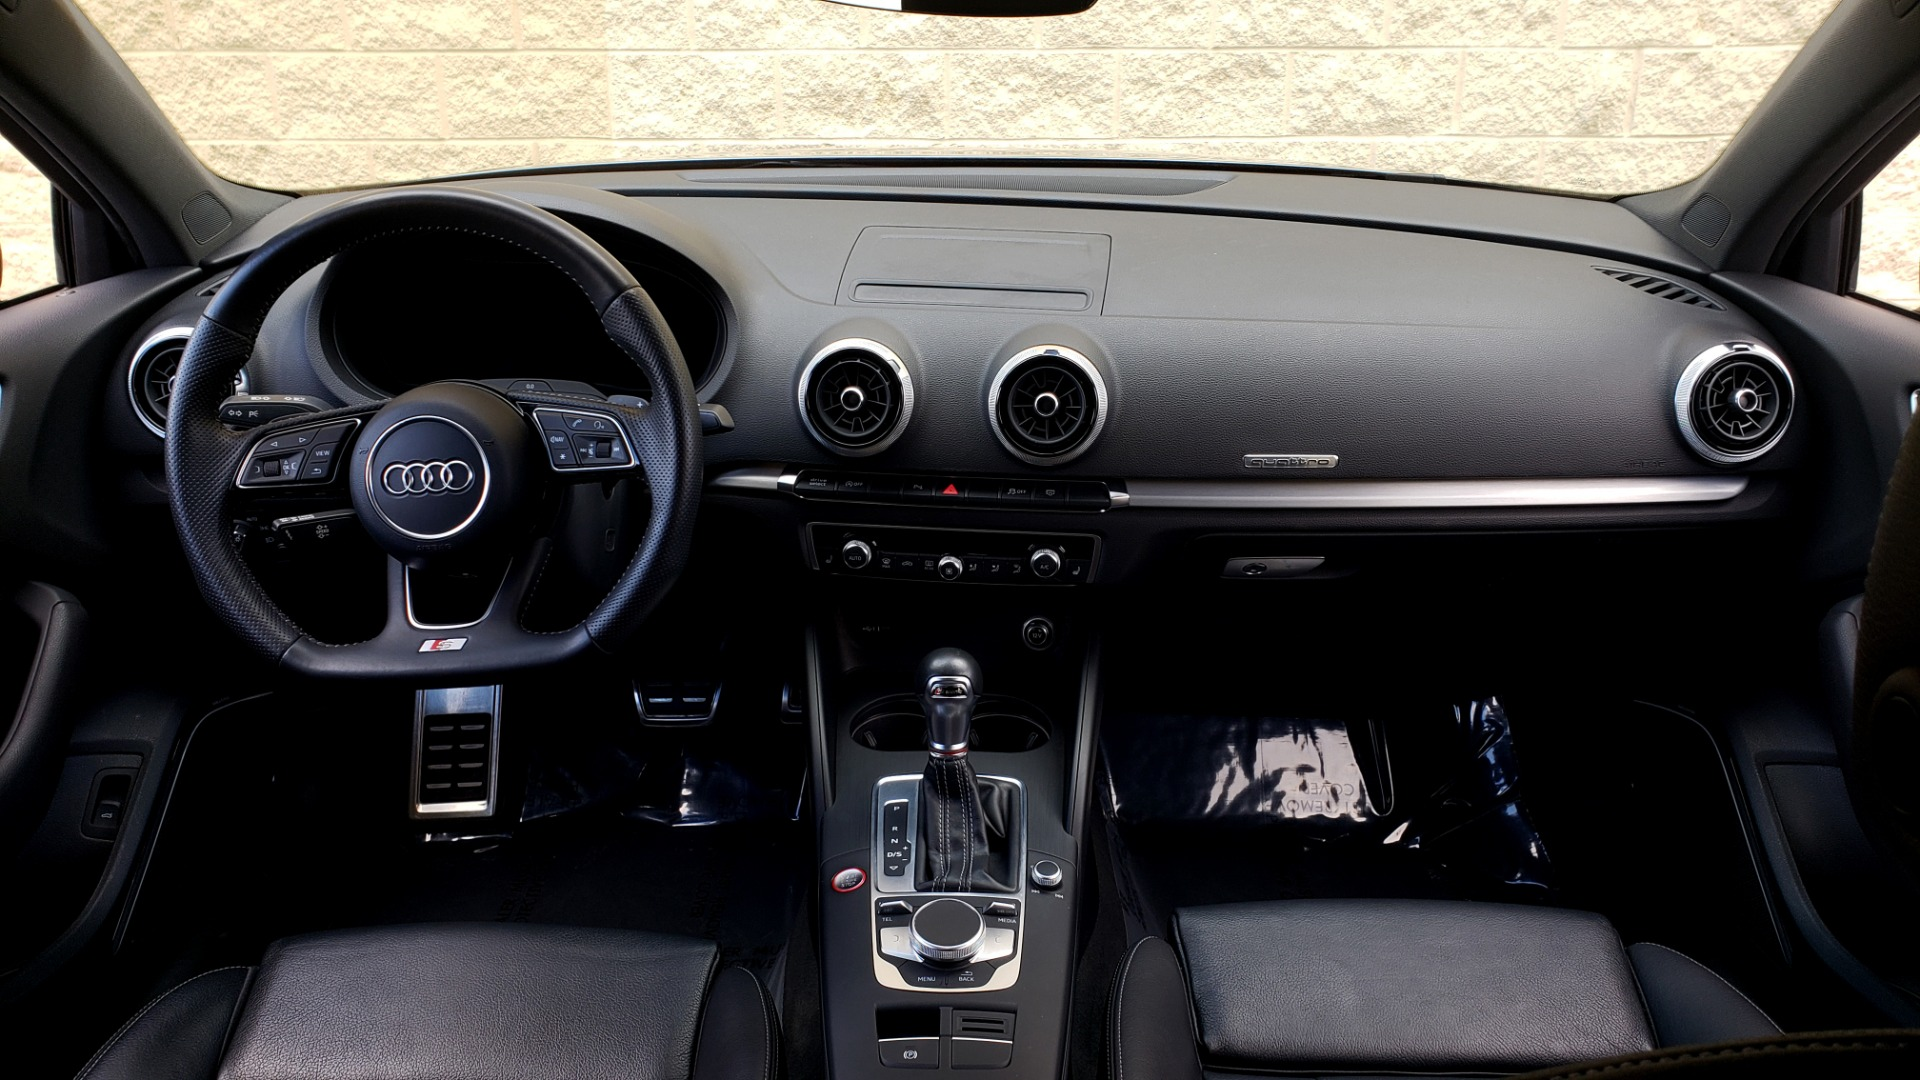 Used 2018 Audi S3 PREMIUM PLUS / TECH / NAV / BLACK OPTIC / S-SPORT / REARVIEW for sale $32,995 at Formula Imports in Charlotte NC 28227 80